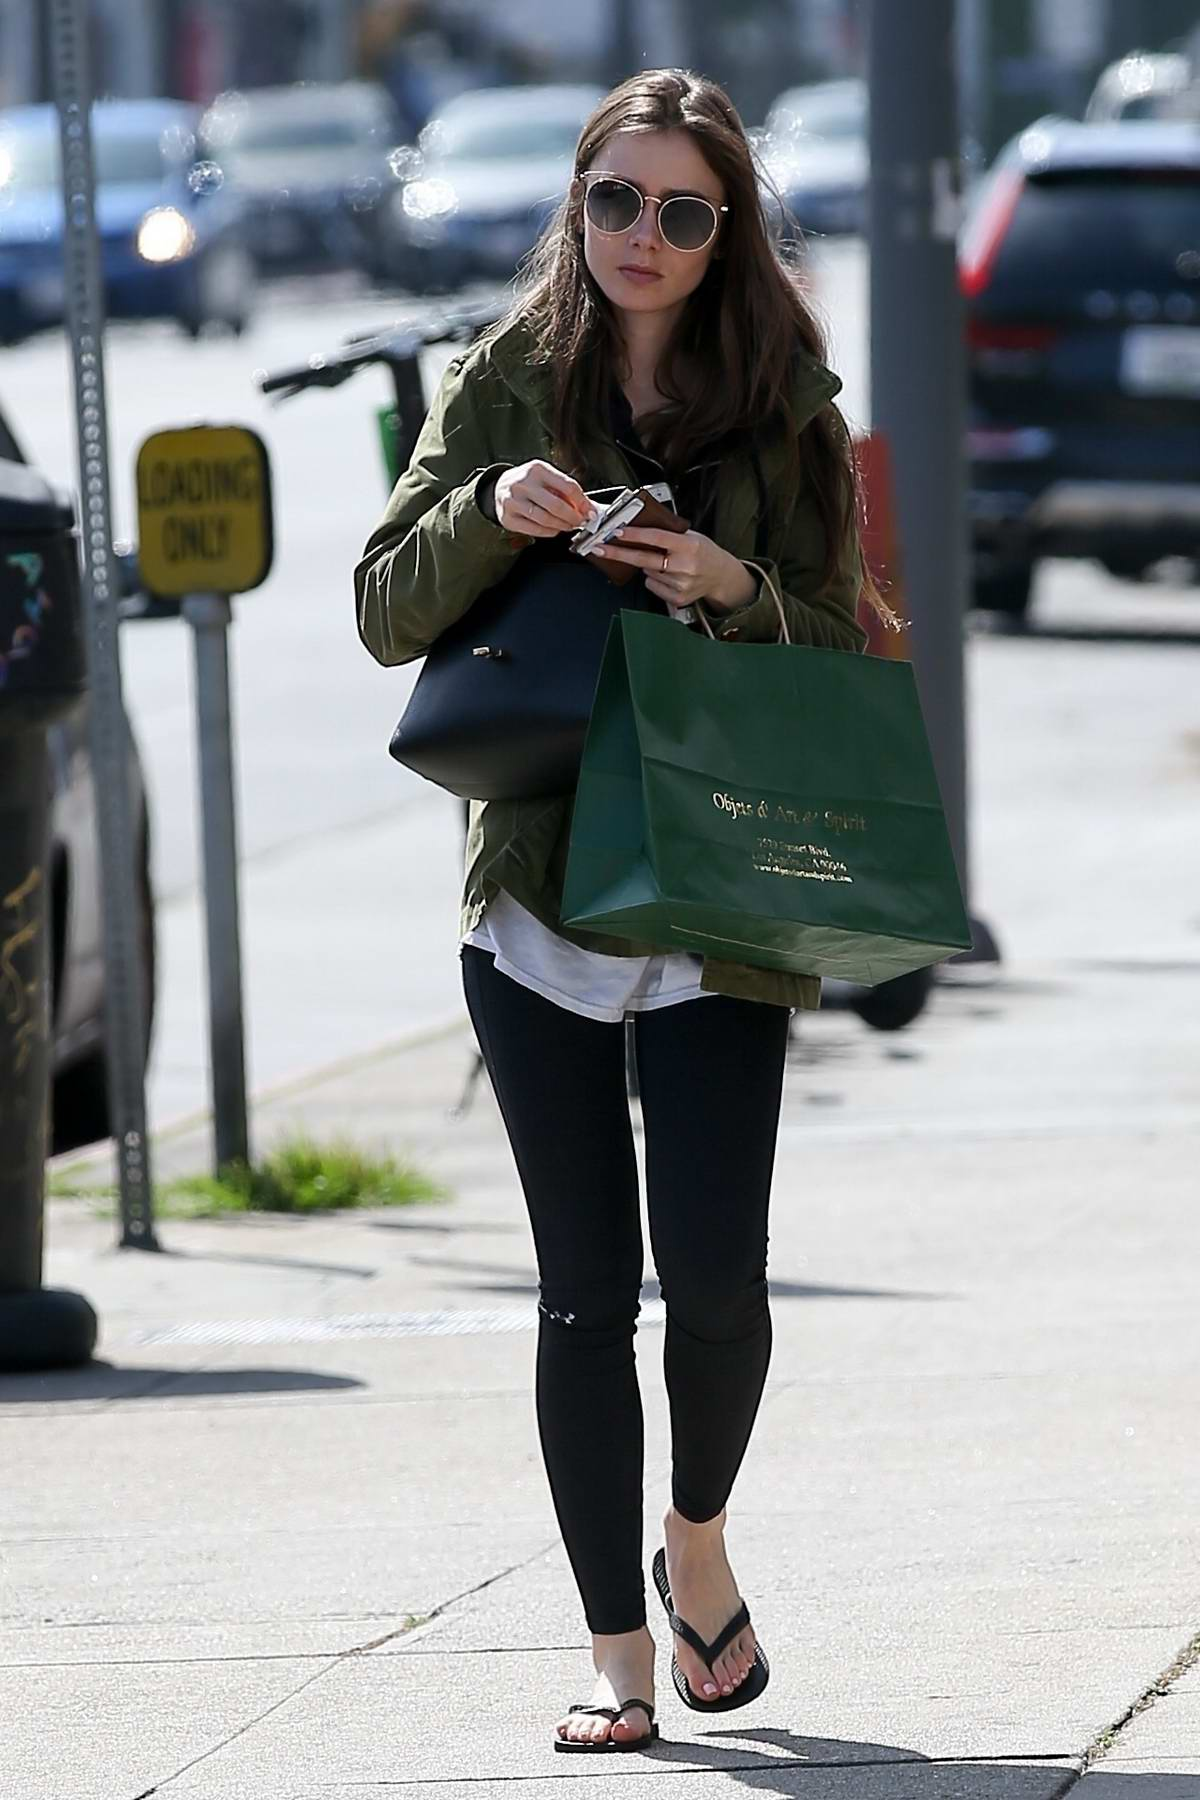 Lily Collins steps out in flip flops and military green jacket to do some shopping in Hollywood, California